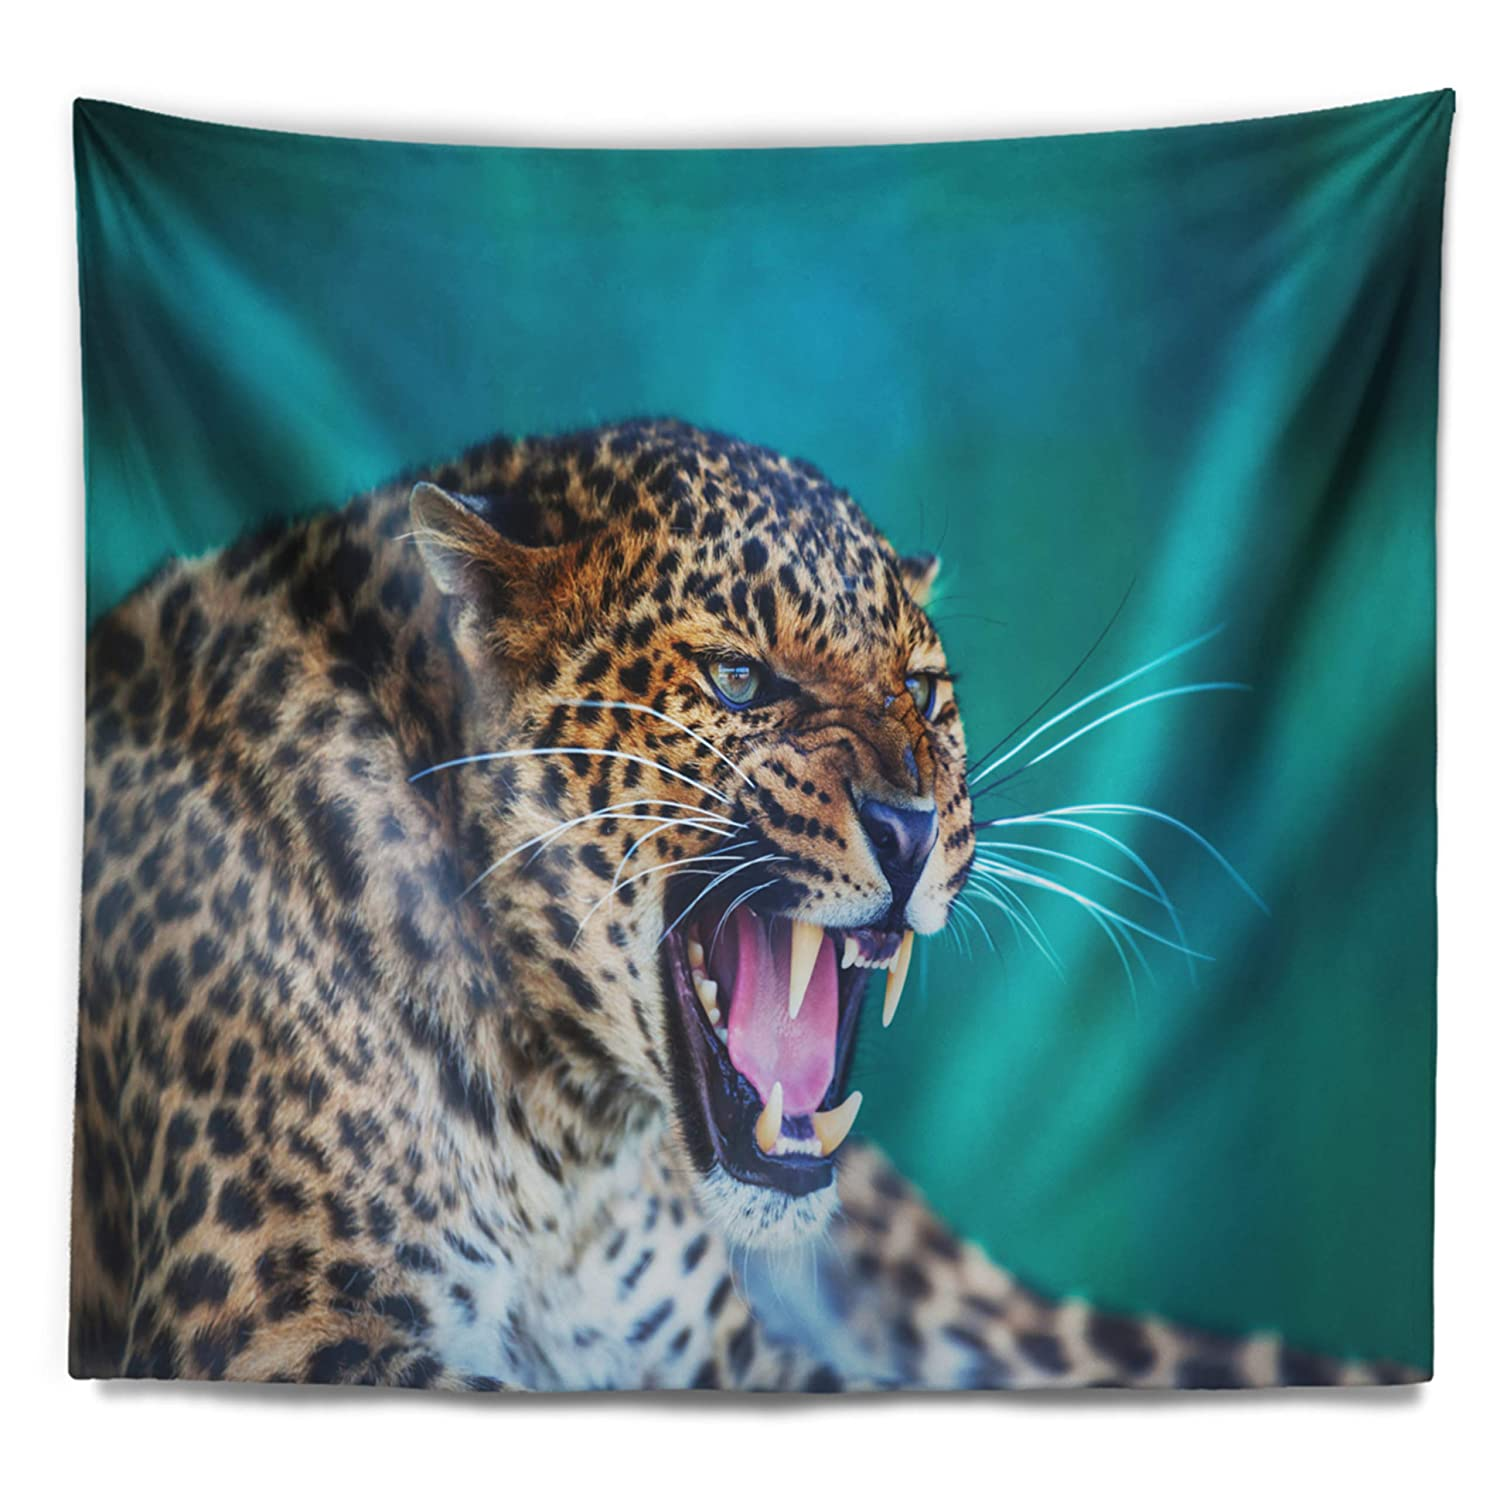 x 68 in Designart TAP12232-80-68  Wild Leopard Close Up View Abstract Blanket D/écor Art for Home and Office Wall Tapestry x Large 80 in Created On Lightweight Polyester Fabric